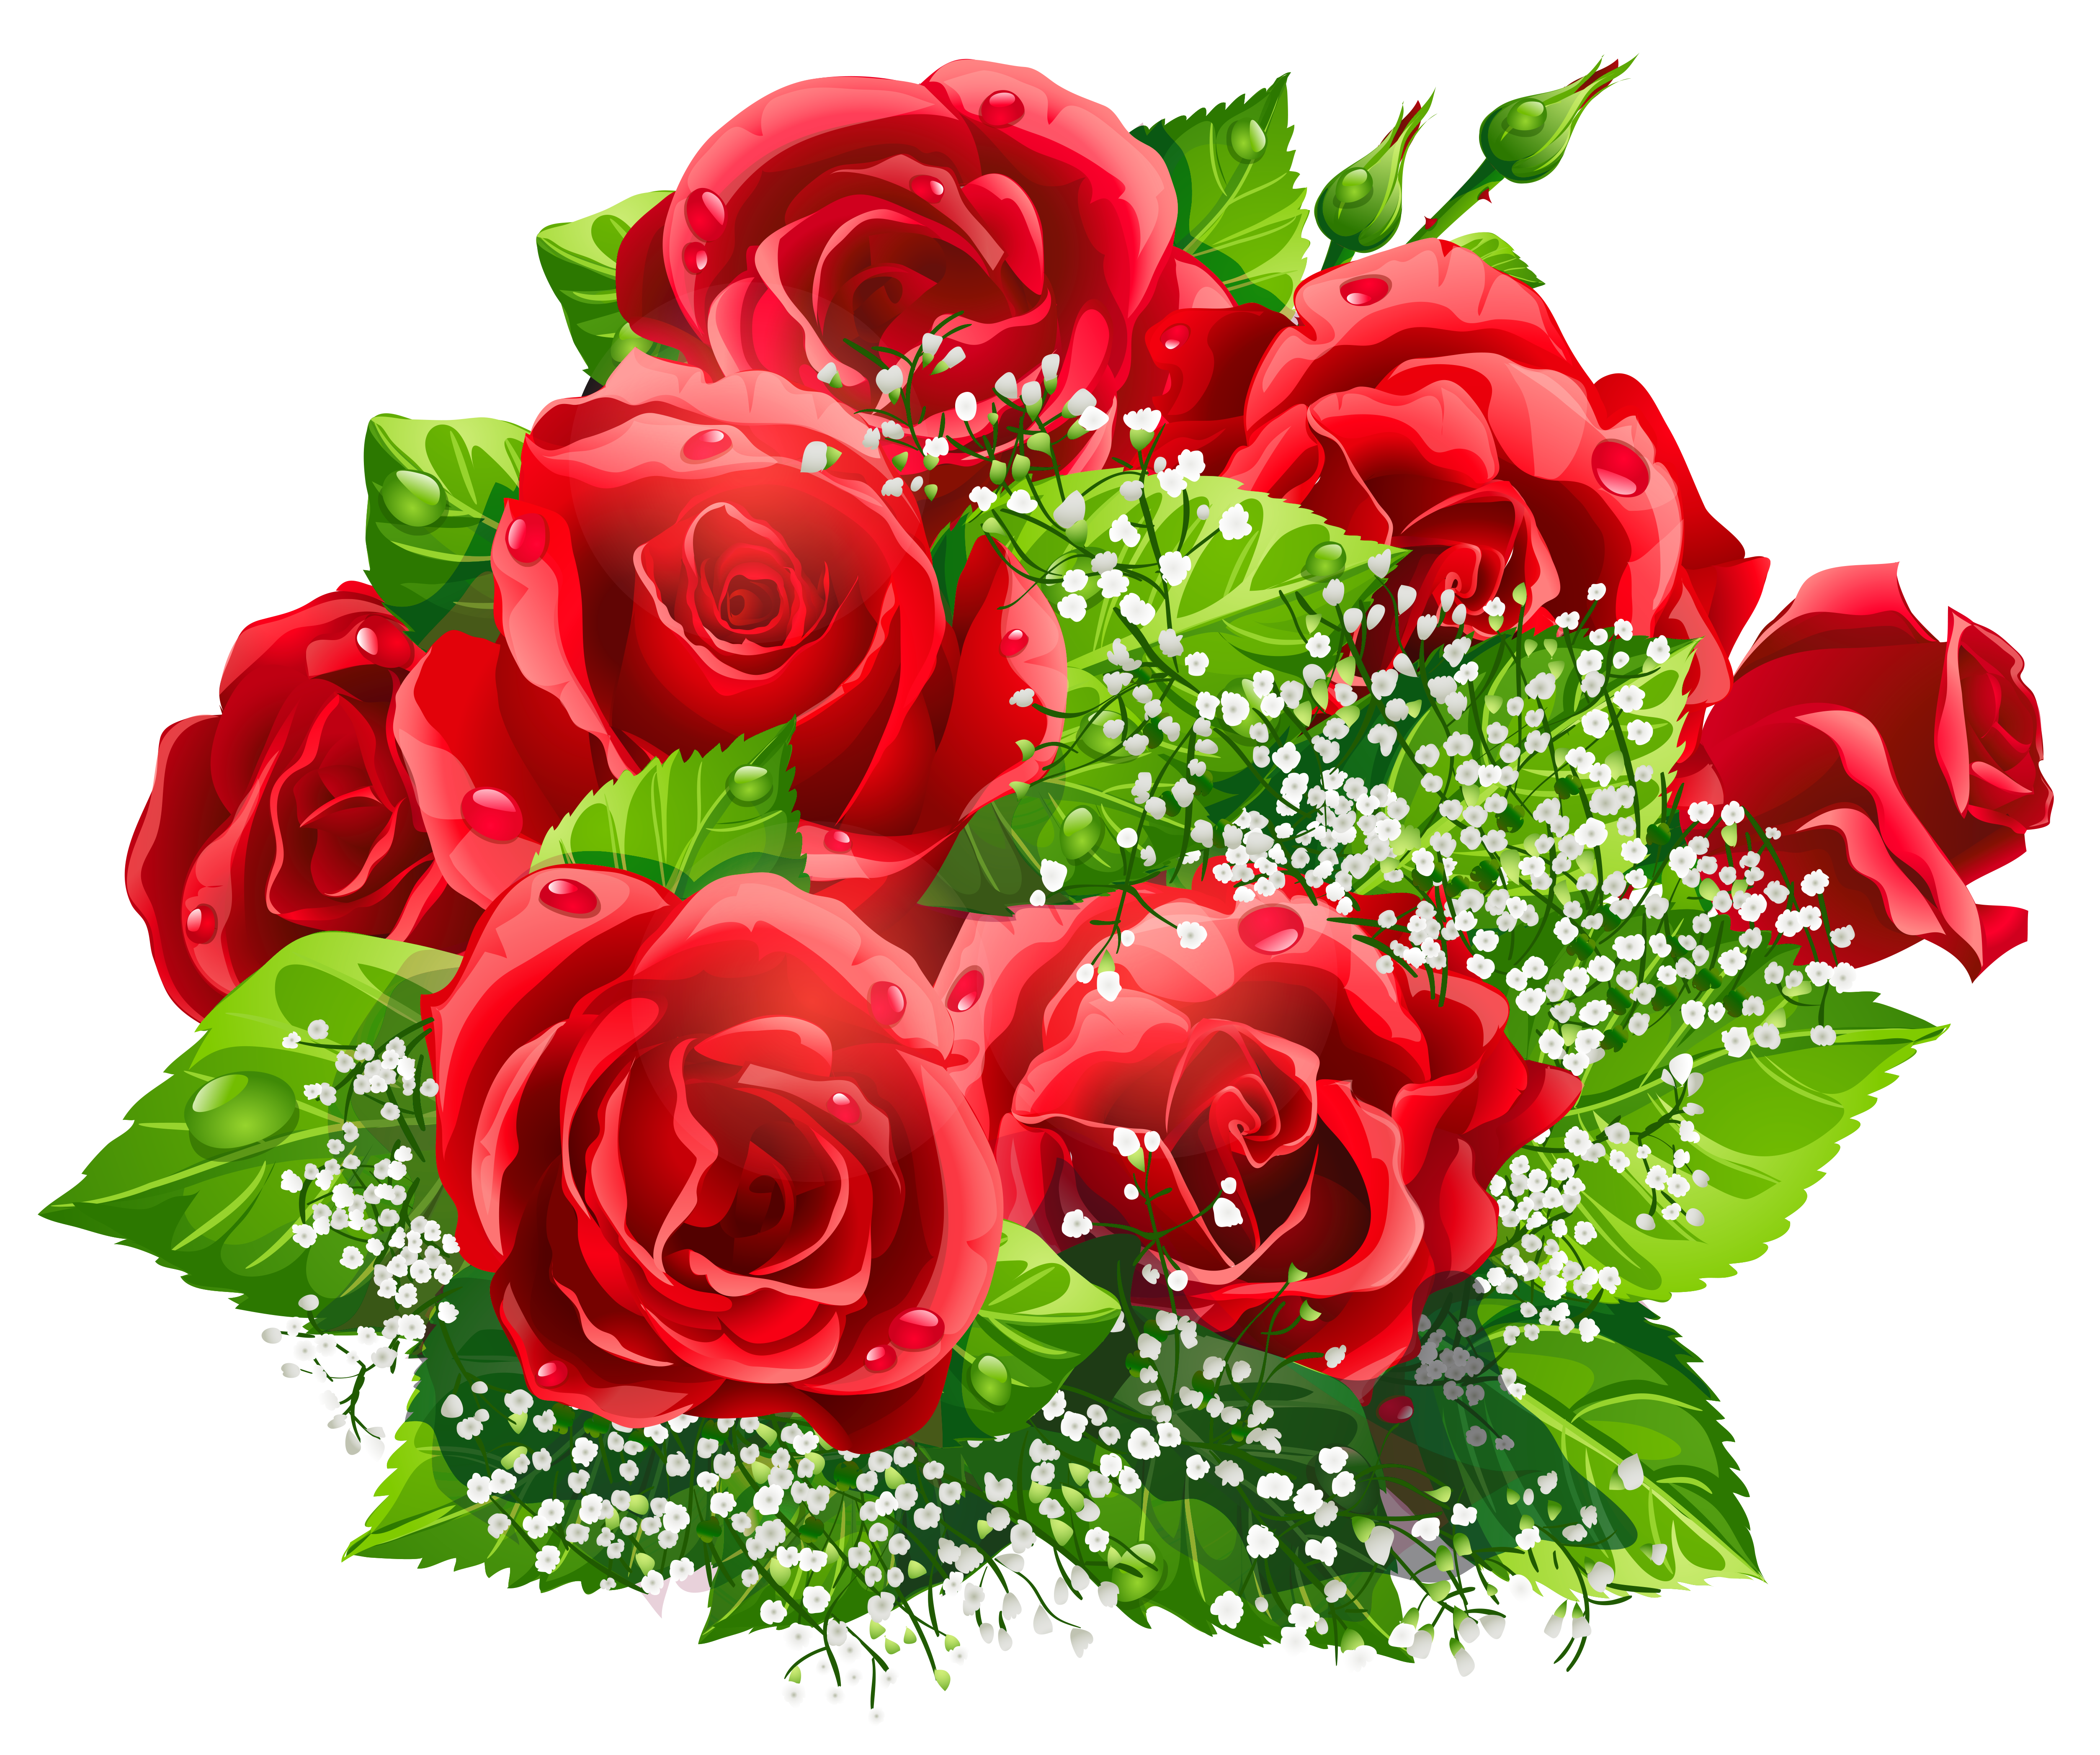 Beautiful Red Roses Decor Png Clipart Gallery Yopriceville High Quality Images And Transparent Png Free Cli Flower Bouquet Png Flowers Beautiful Red Roses